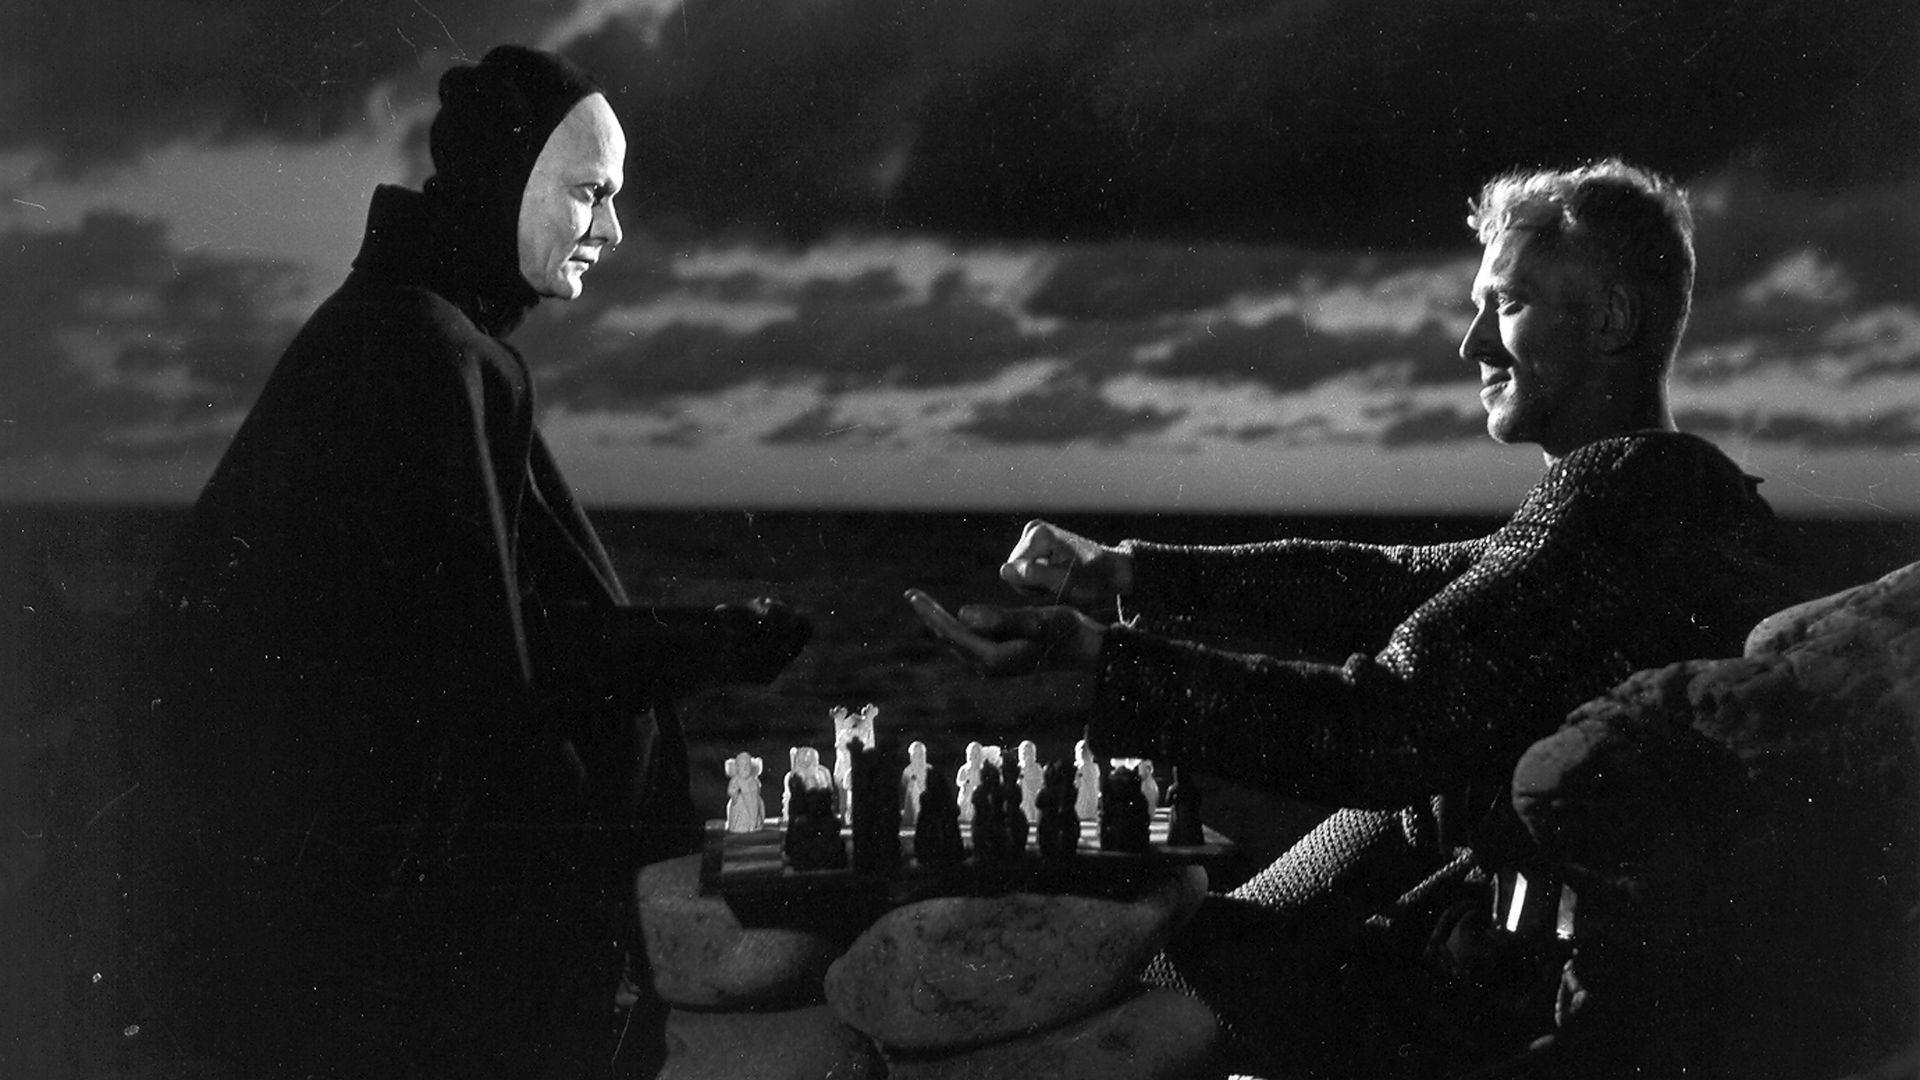 The Seventh Seal  - written and directed by Ingmar Bergman